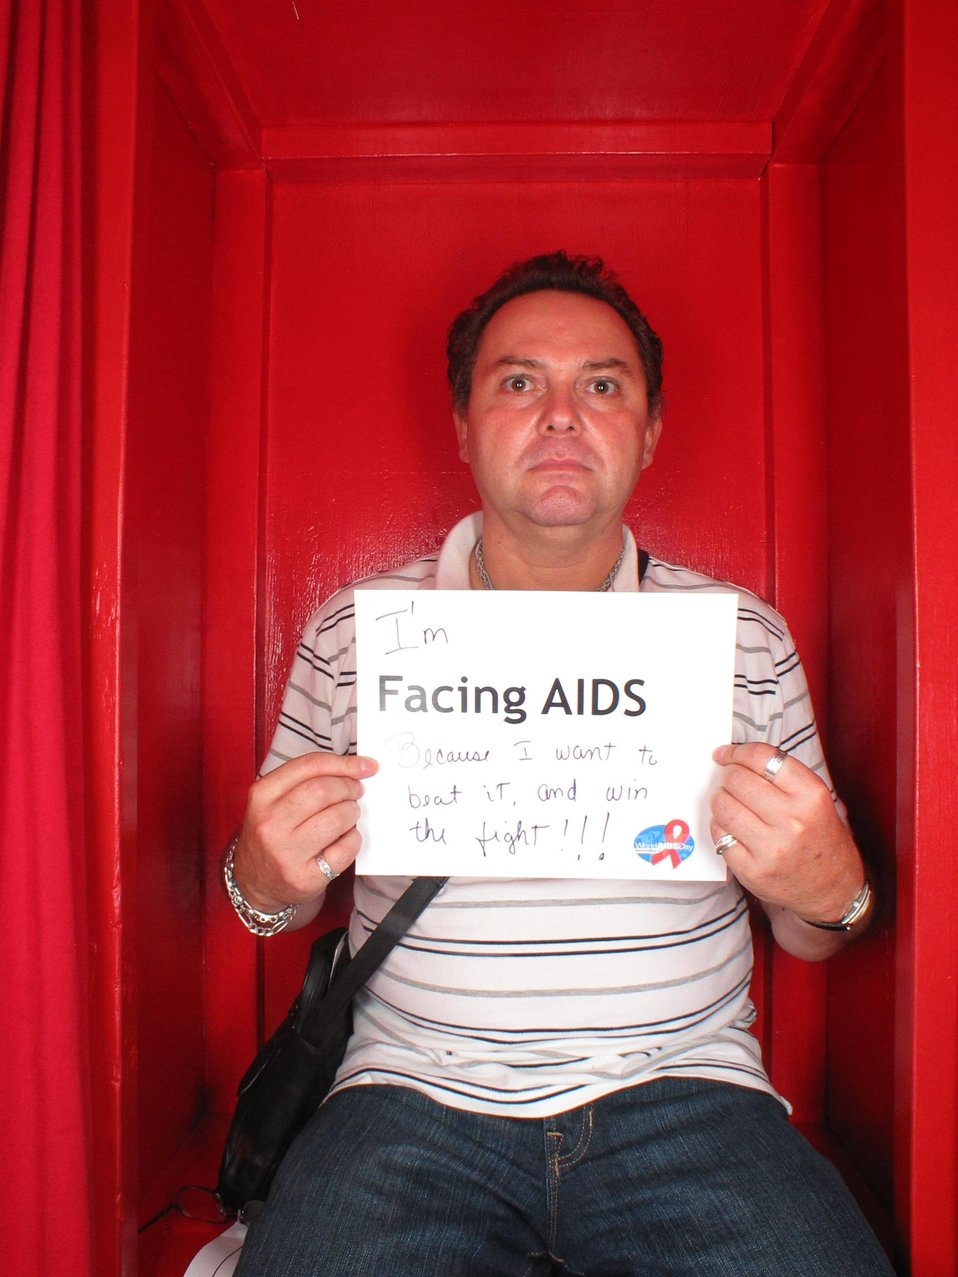 I'm Facing AIDS because I want to beat it and win the fight!!!